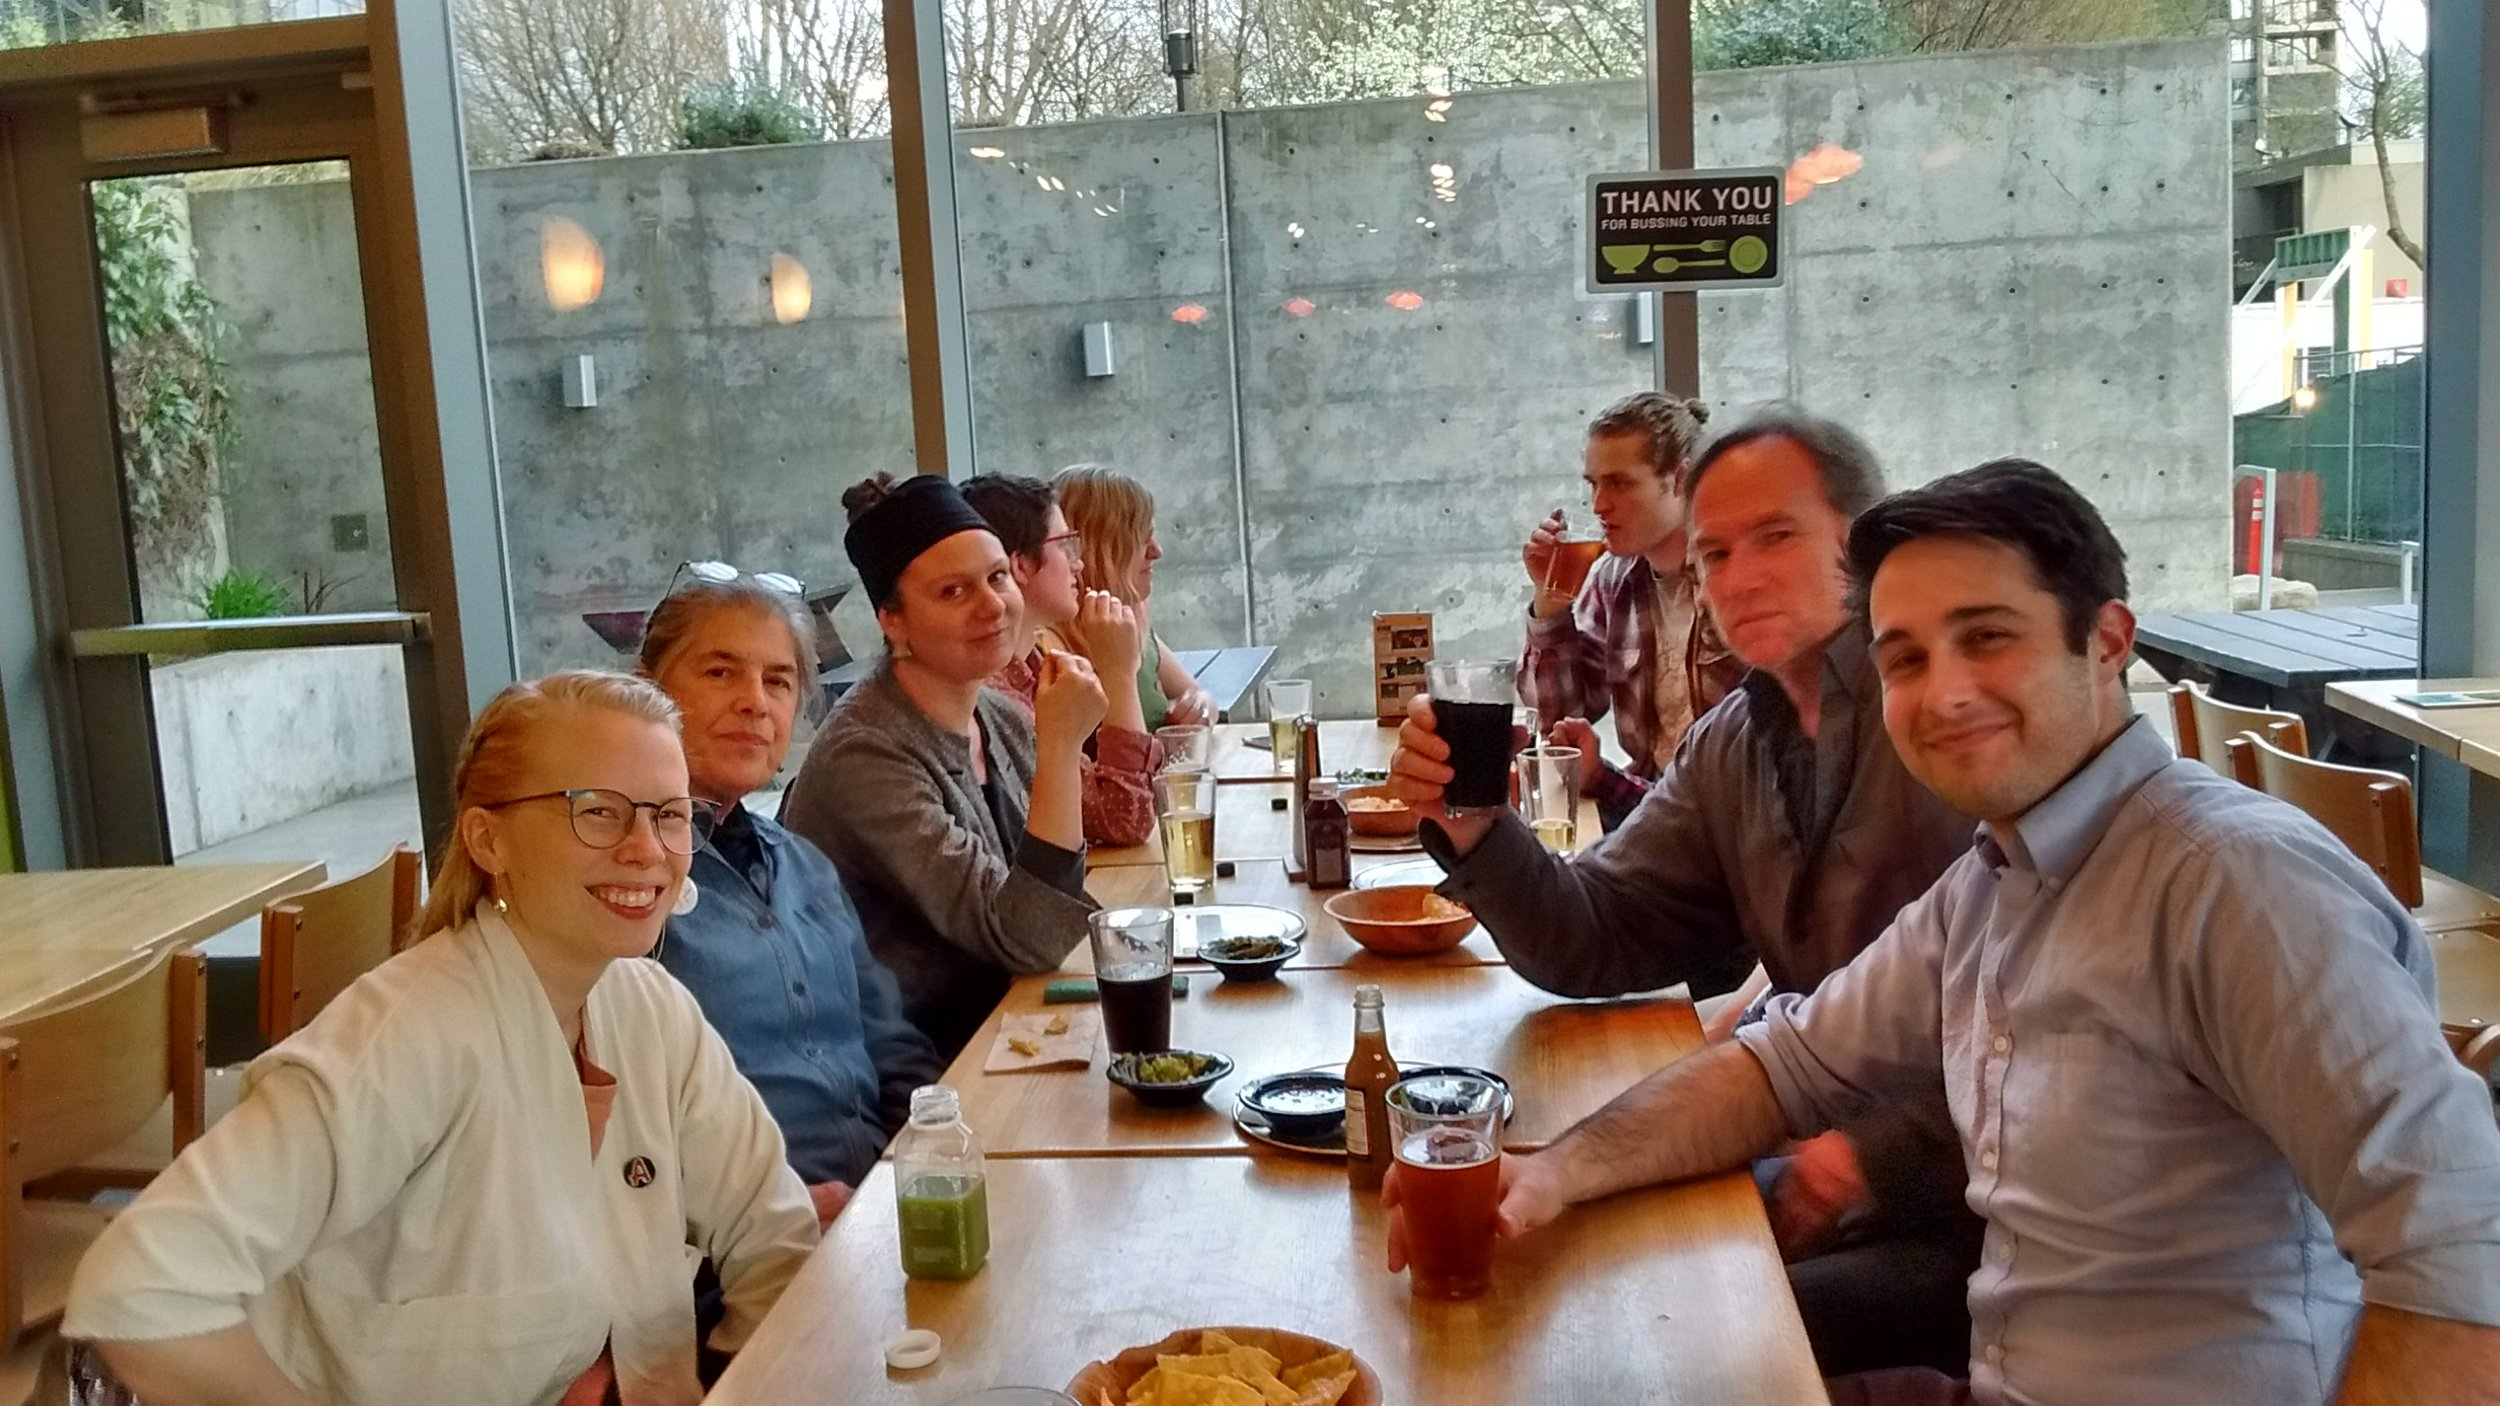 Your team (or most of them, if you look closely you can see Barry's fist behind Bill's beer) decompressing with drinks, guac and some GEU solidarity